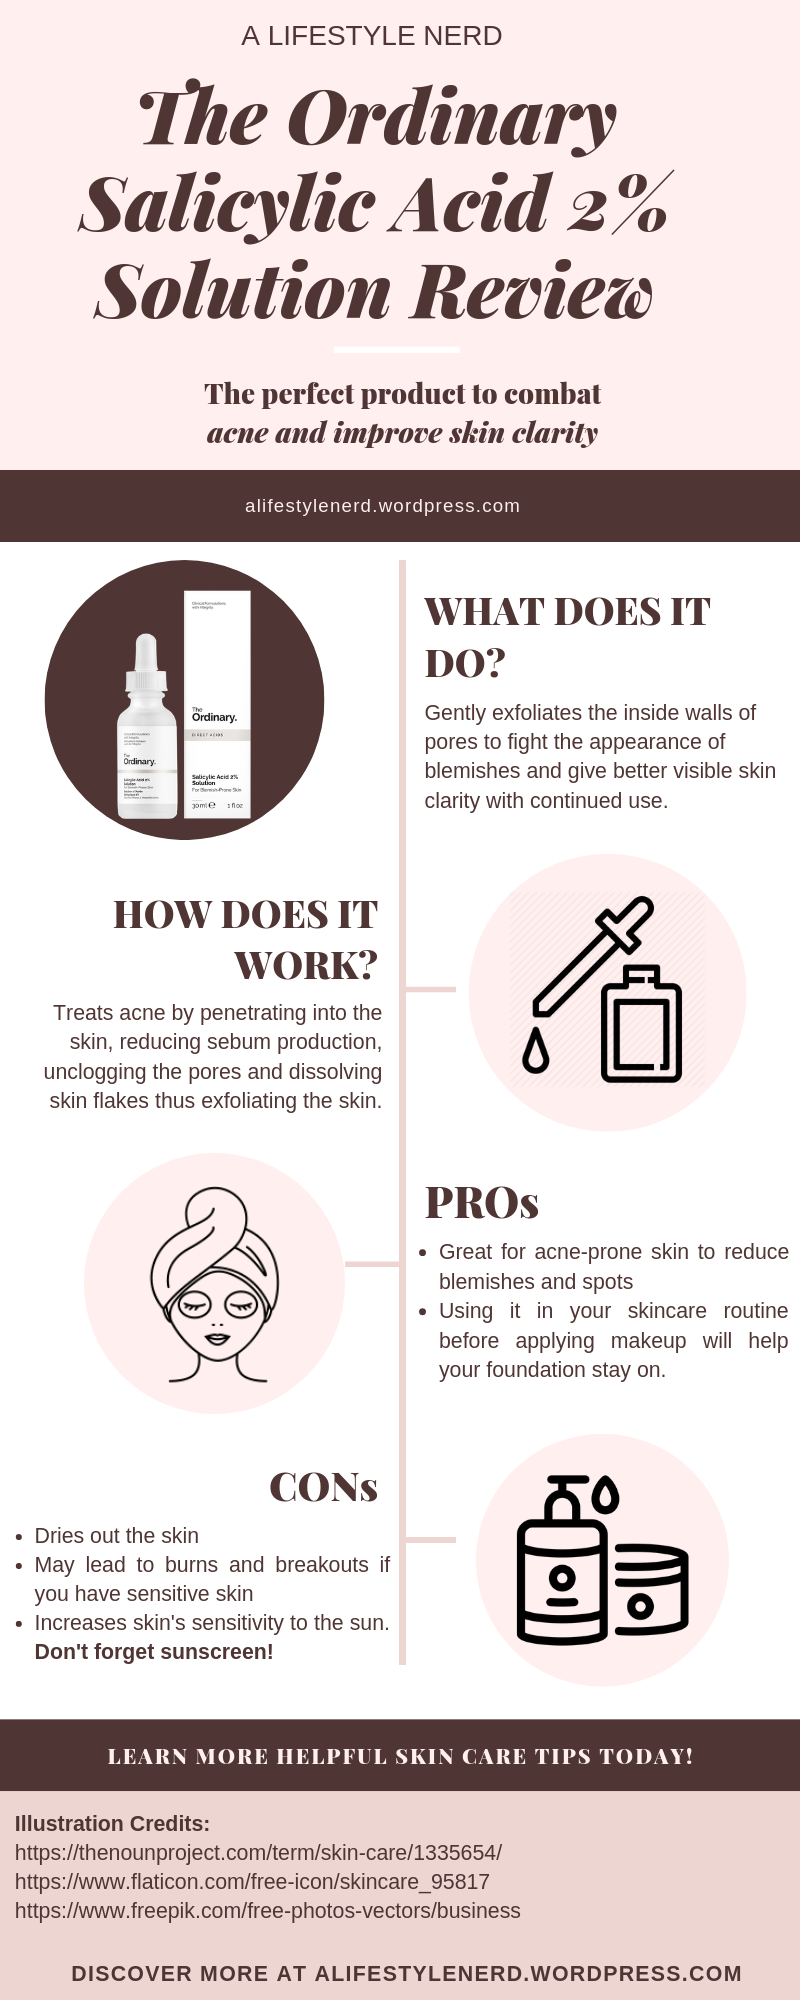 the ordinary salicylic acid 2% solution review. Review of the ordinary salicylic acid 2% solution, how to use the ordinary salicylic acid for oily, acne-prone skin, salicylic acid for acne,